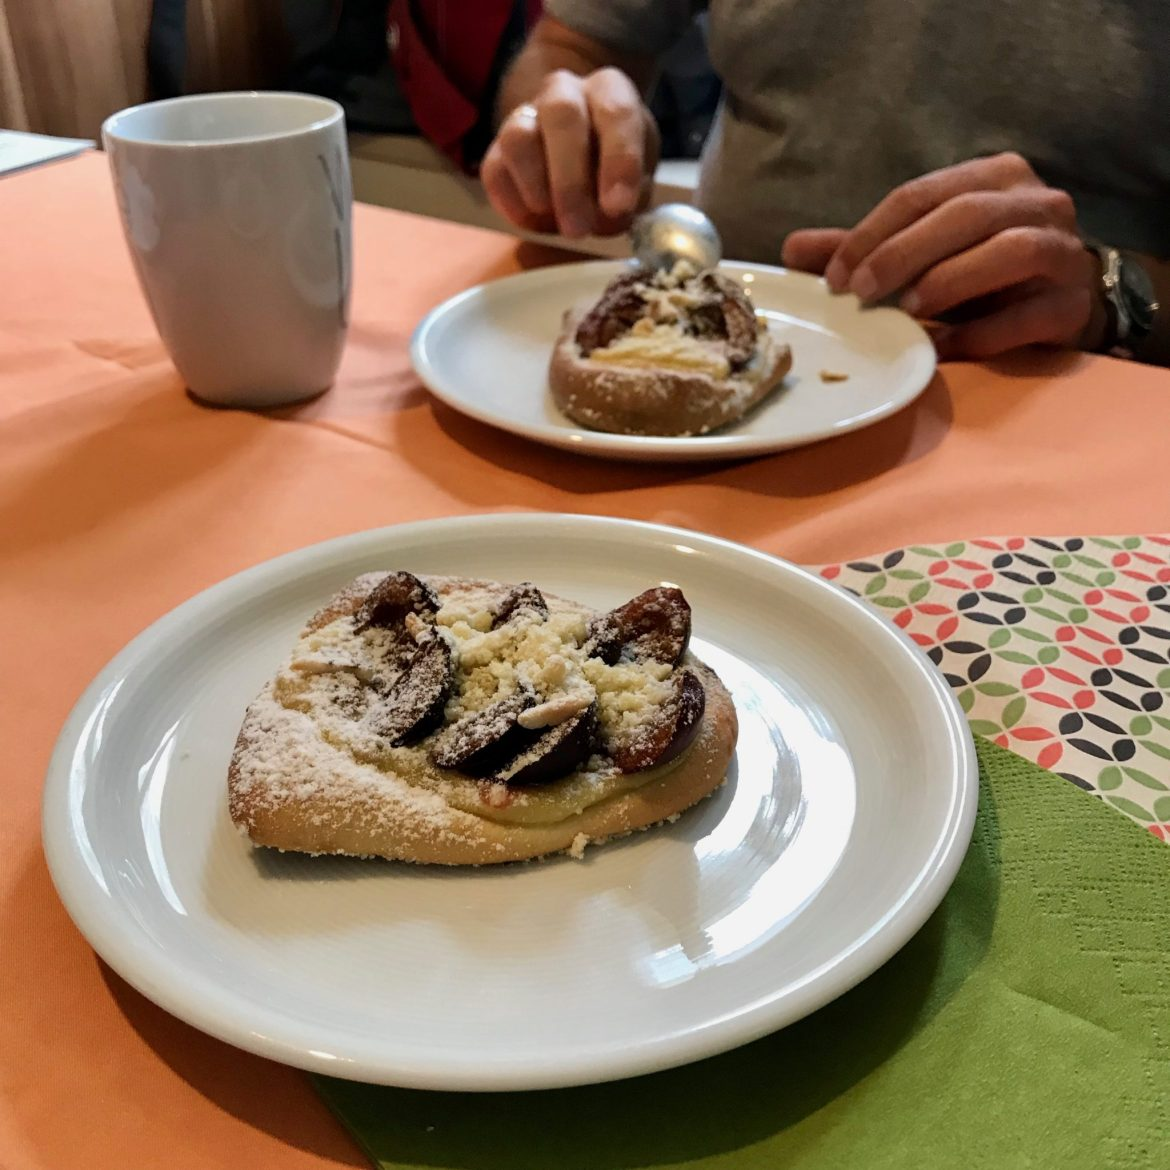 Two plates of German plum pastries, one being eaten